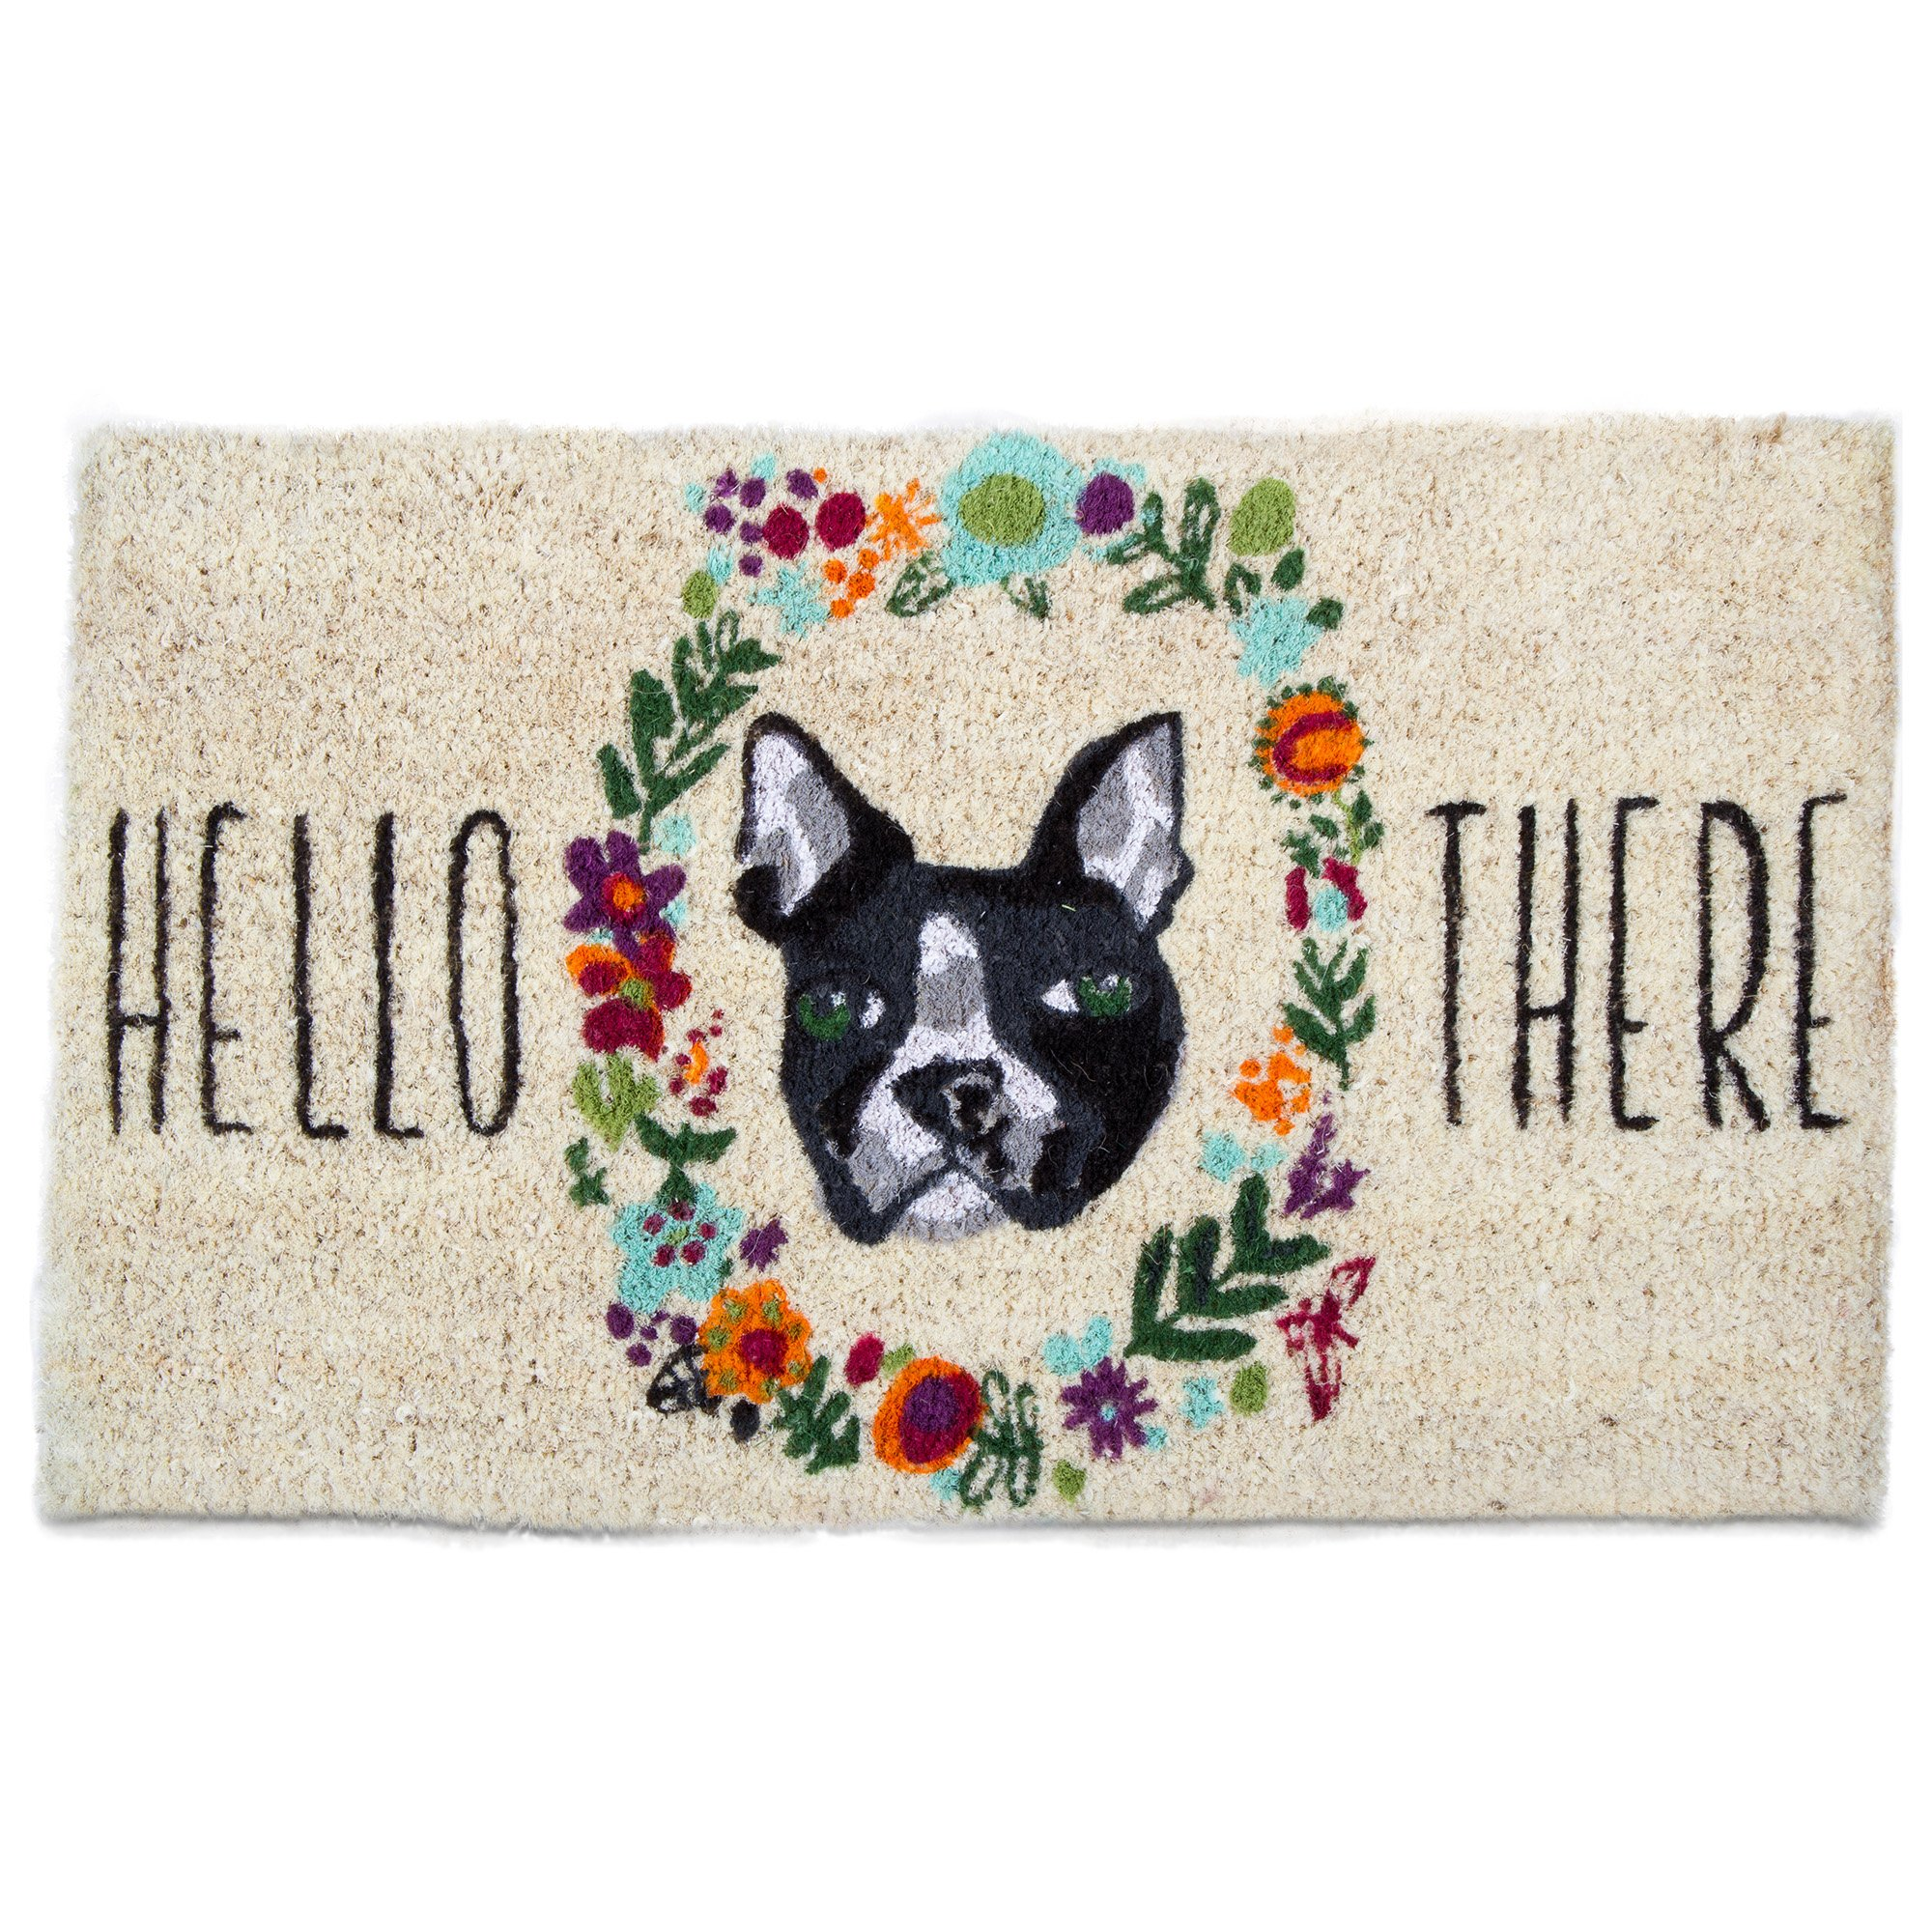 tag - Hello There Dog Coir Mat, Decorative All-Season Mat for the Front Porch, Patio or Entryway, Multi